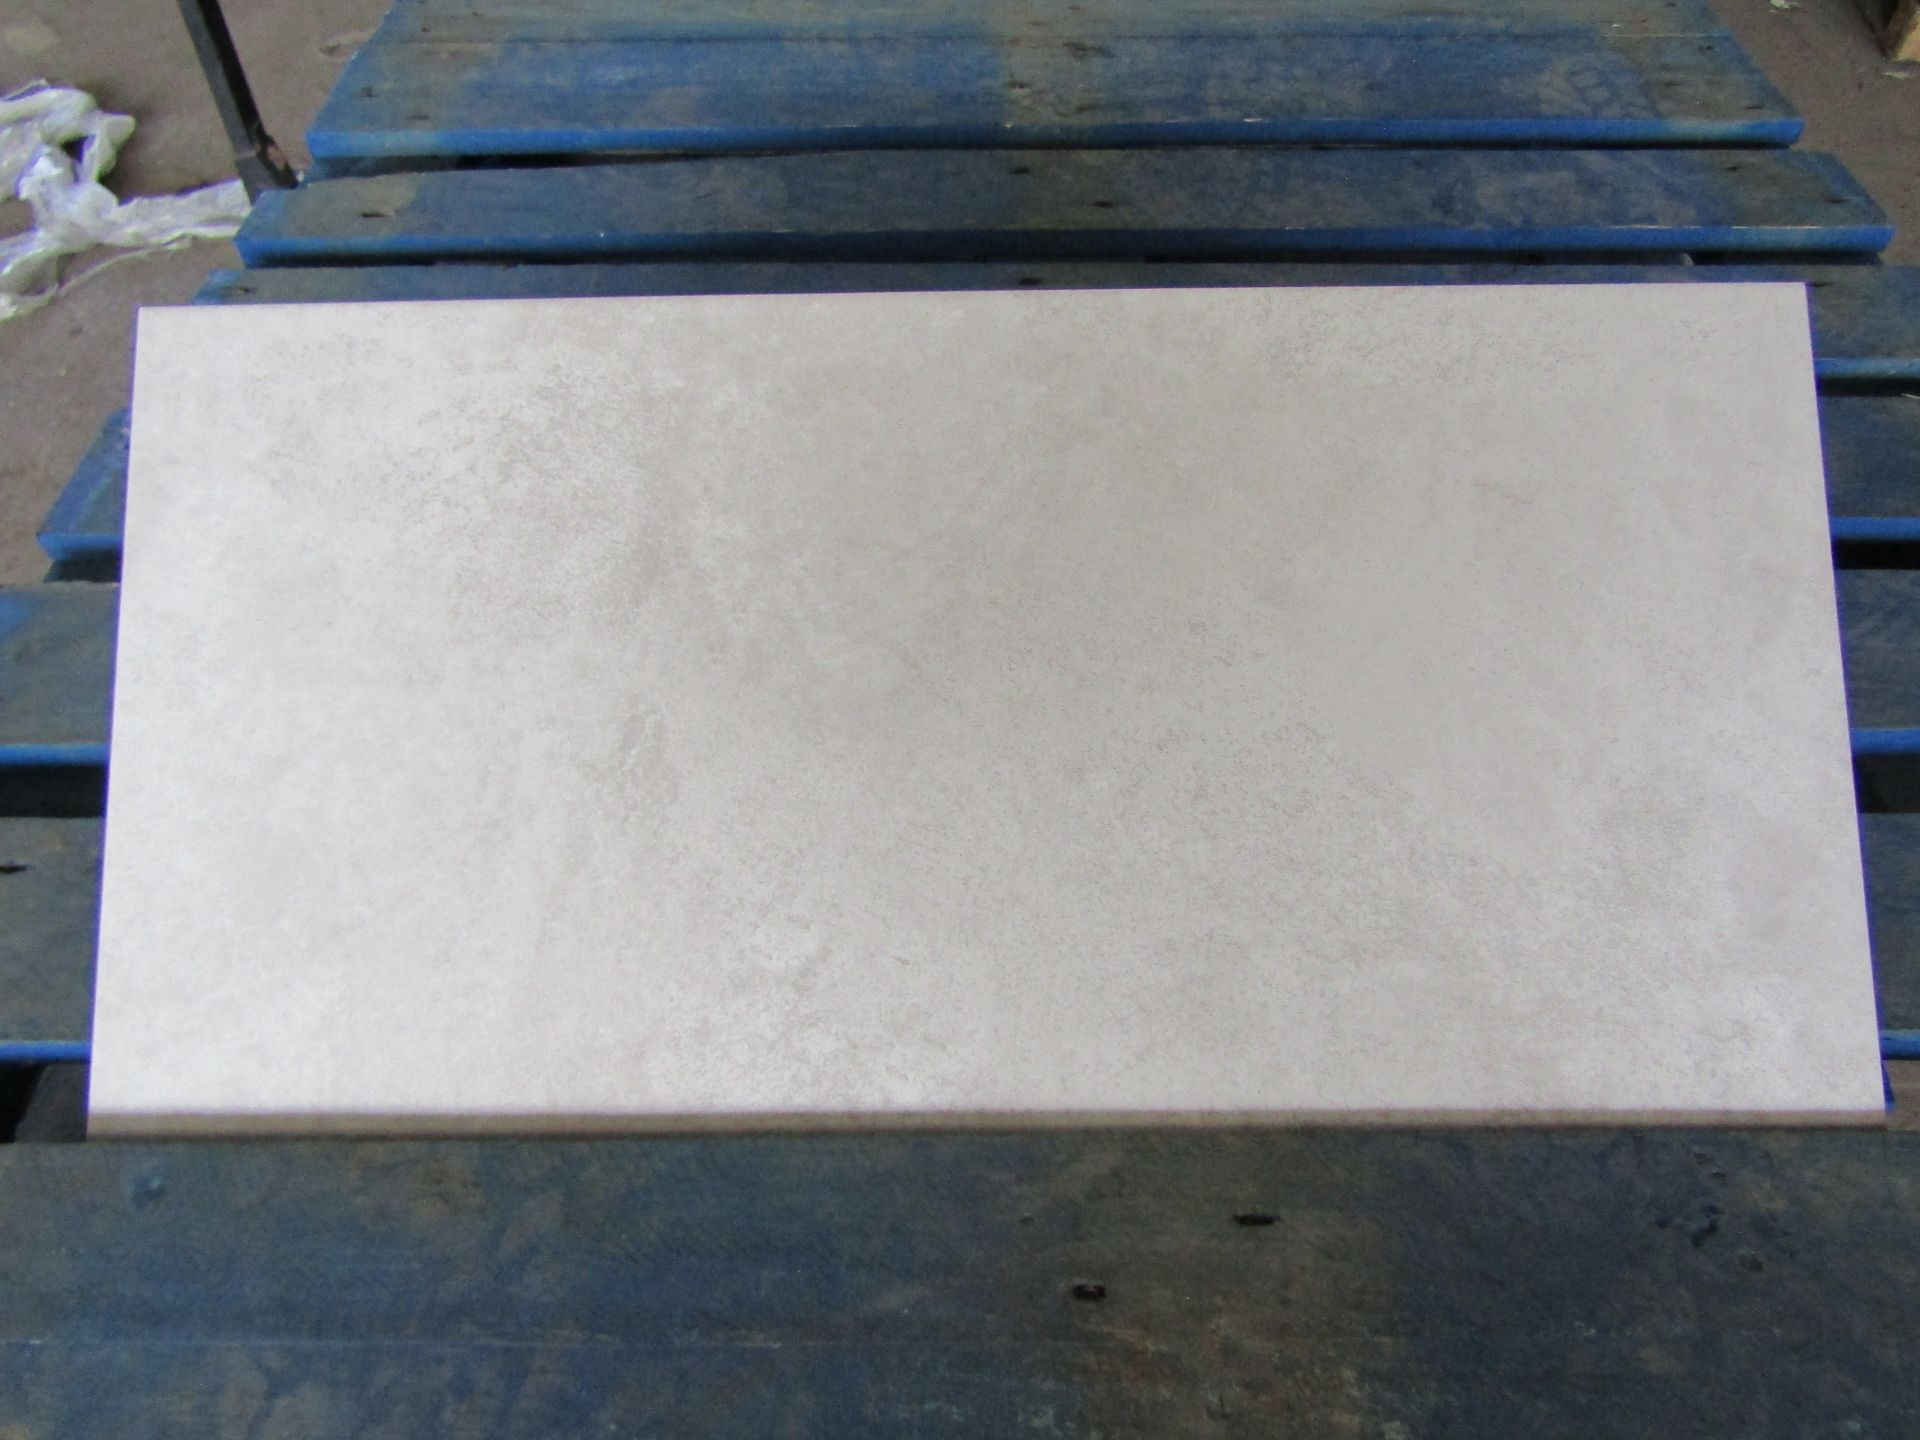 Pallet of 40x Packs of 5 Cambridge Classic White 300x600 wall and Floor Tiles By Johnsons, New,